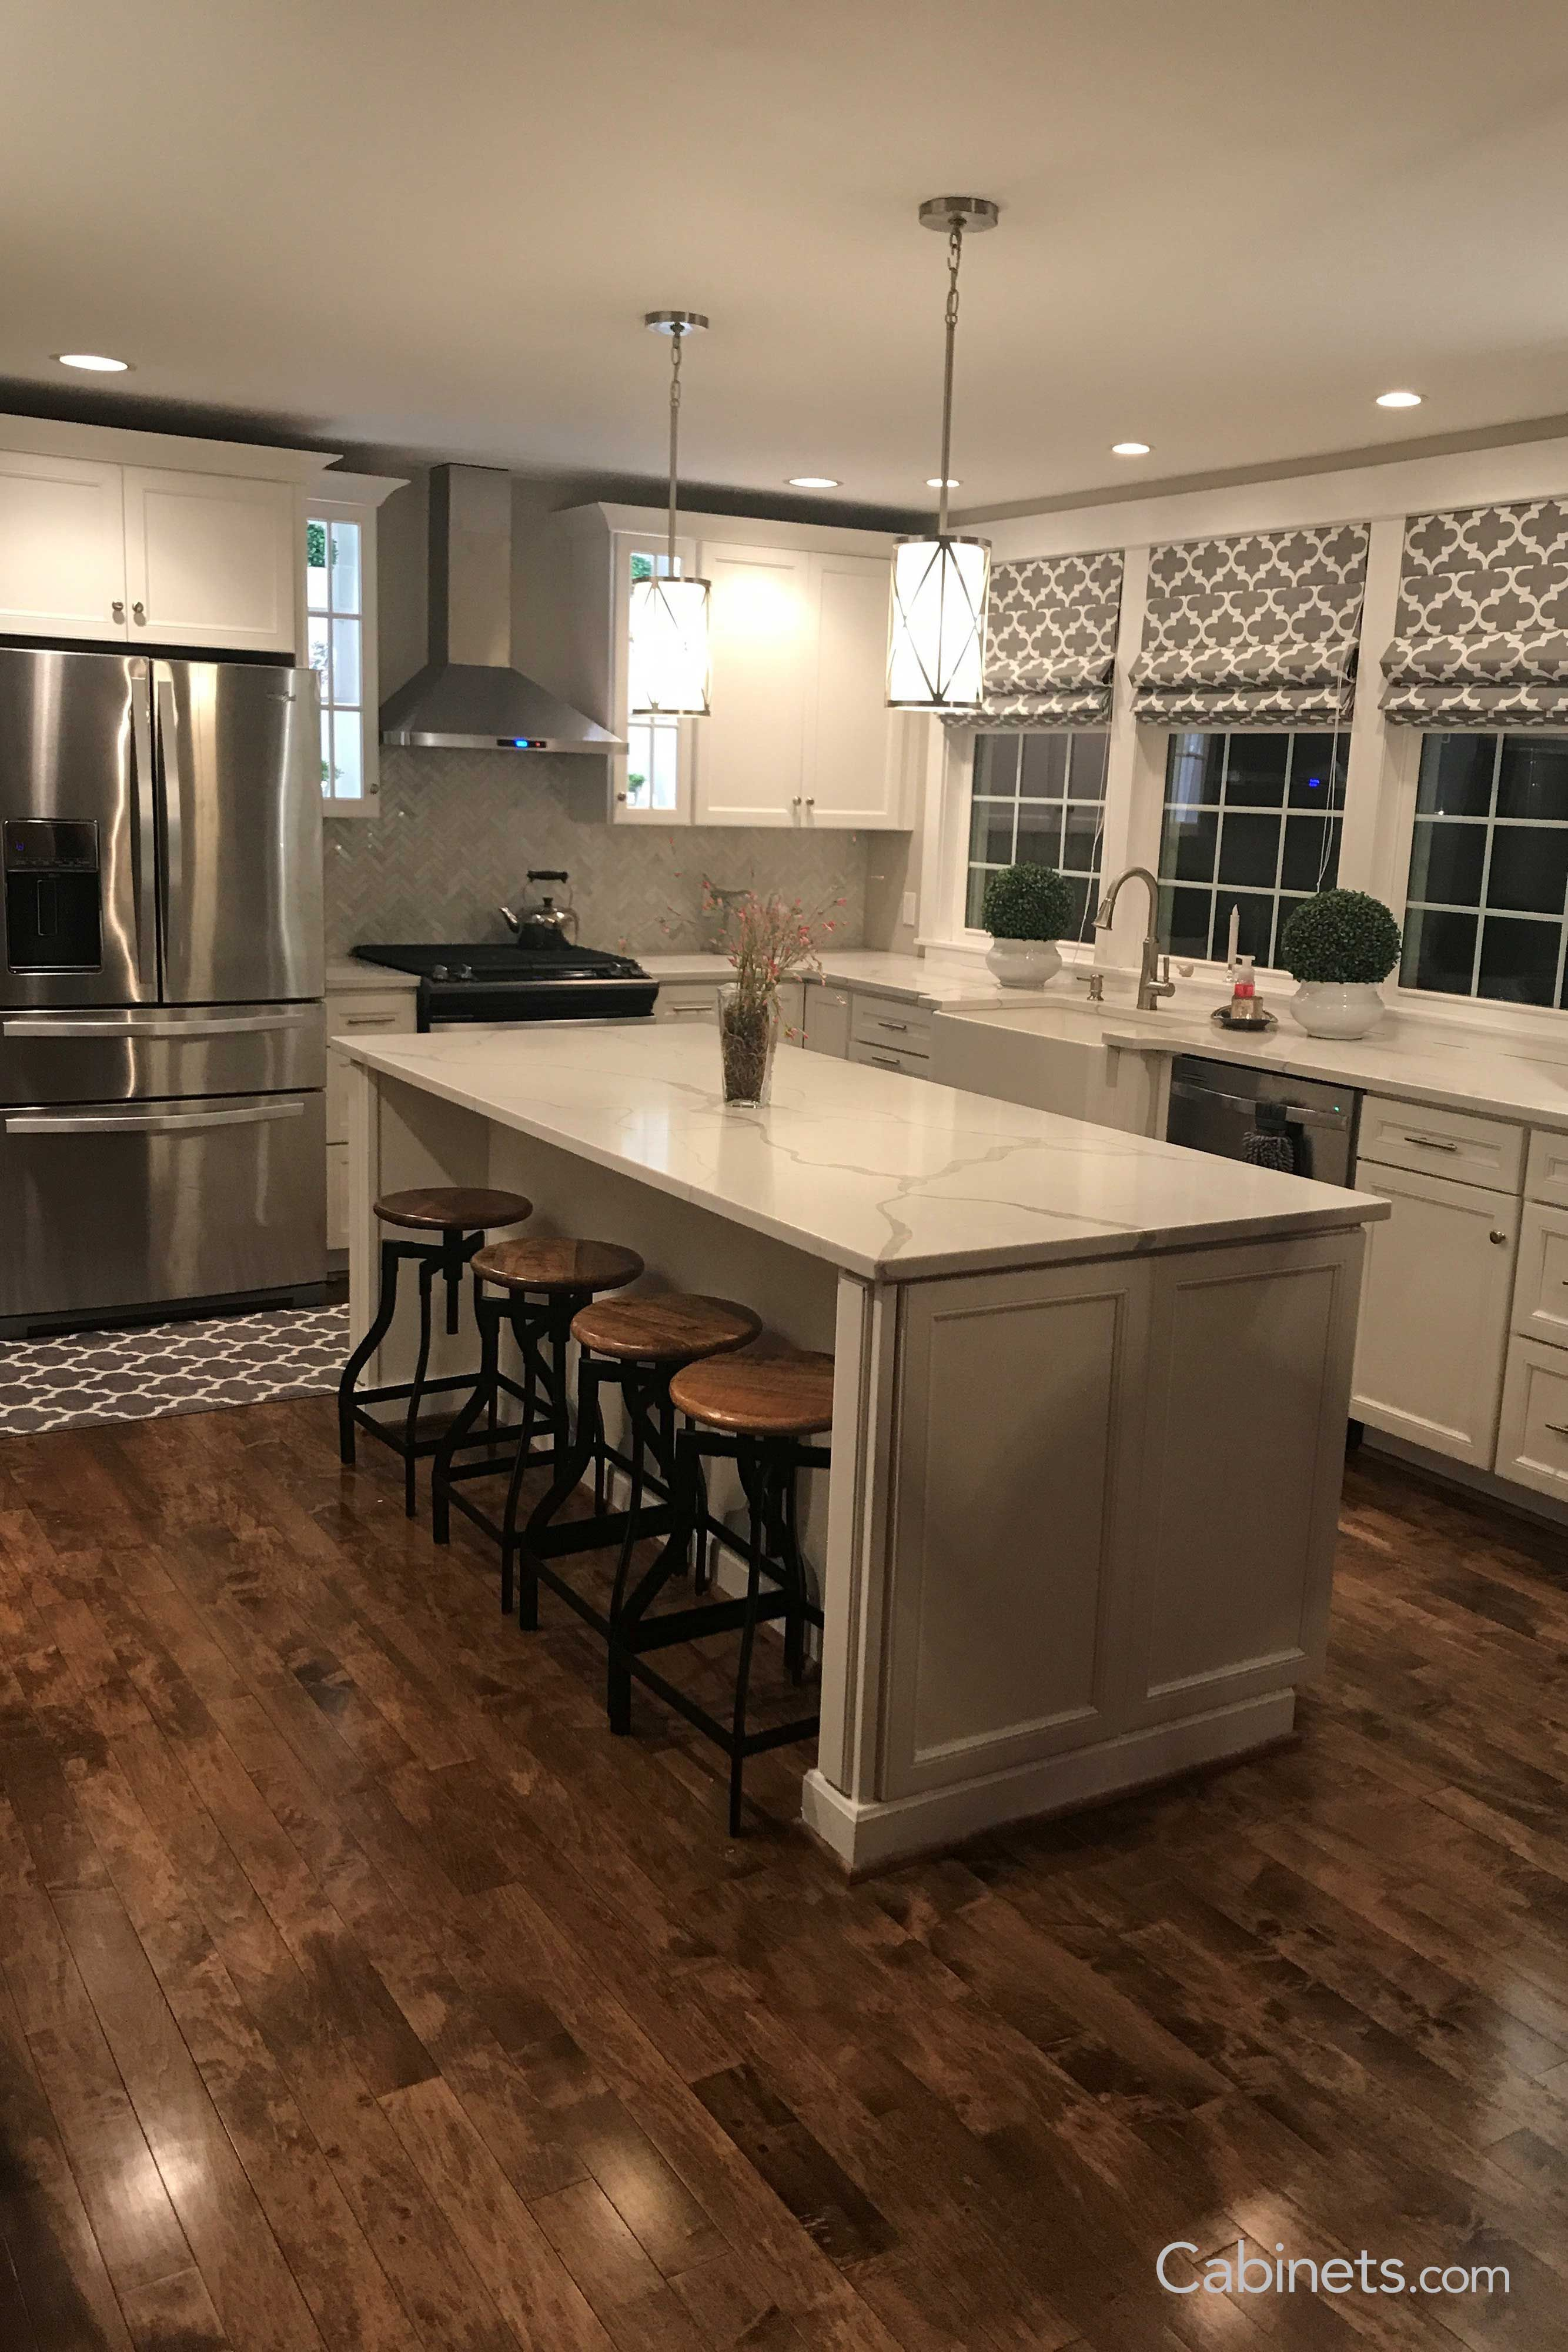 Show Your Style By Adding Textures And Patterns To Your Kitchen This Kitchen Shows Our Belleair Online Kitchen Cabinets Maple Kitchen Cabinets Kitchen Remodel